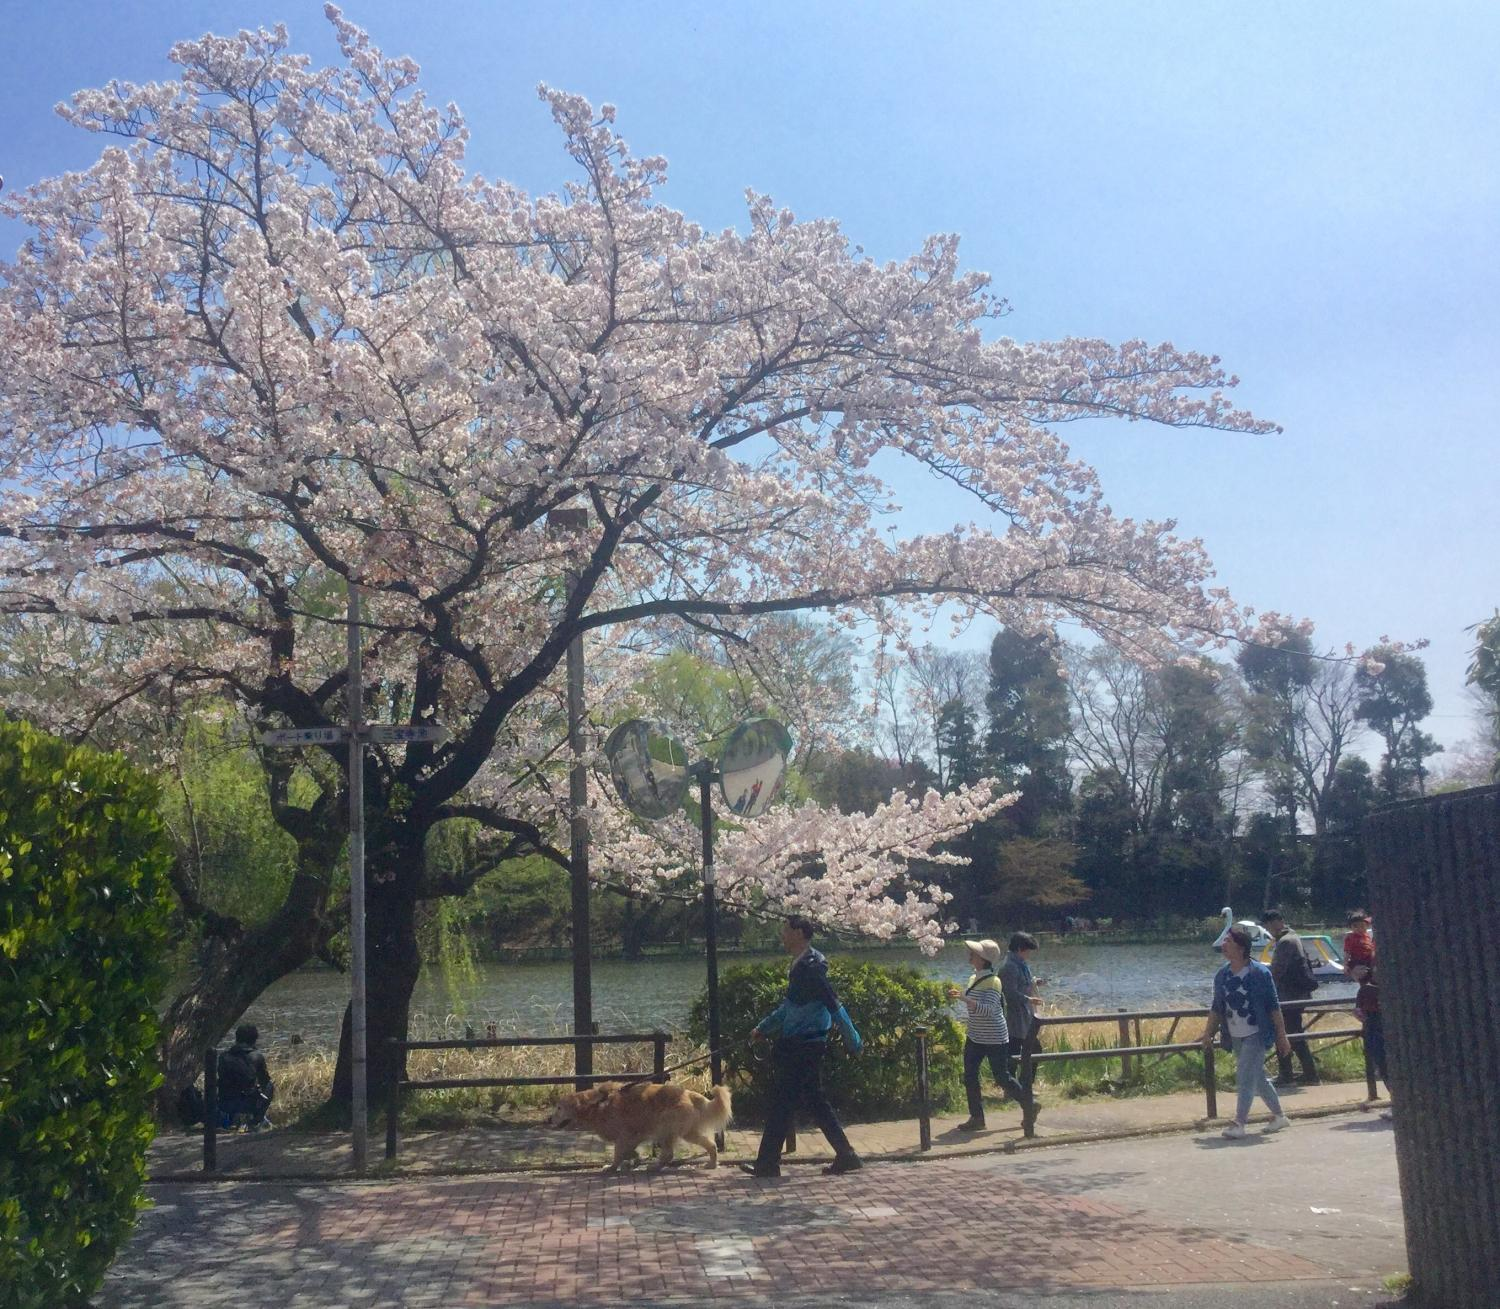 People ② image to enjoy cherry blossom viewing